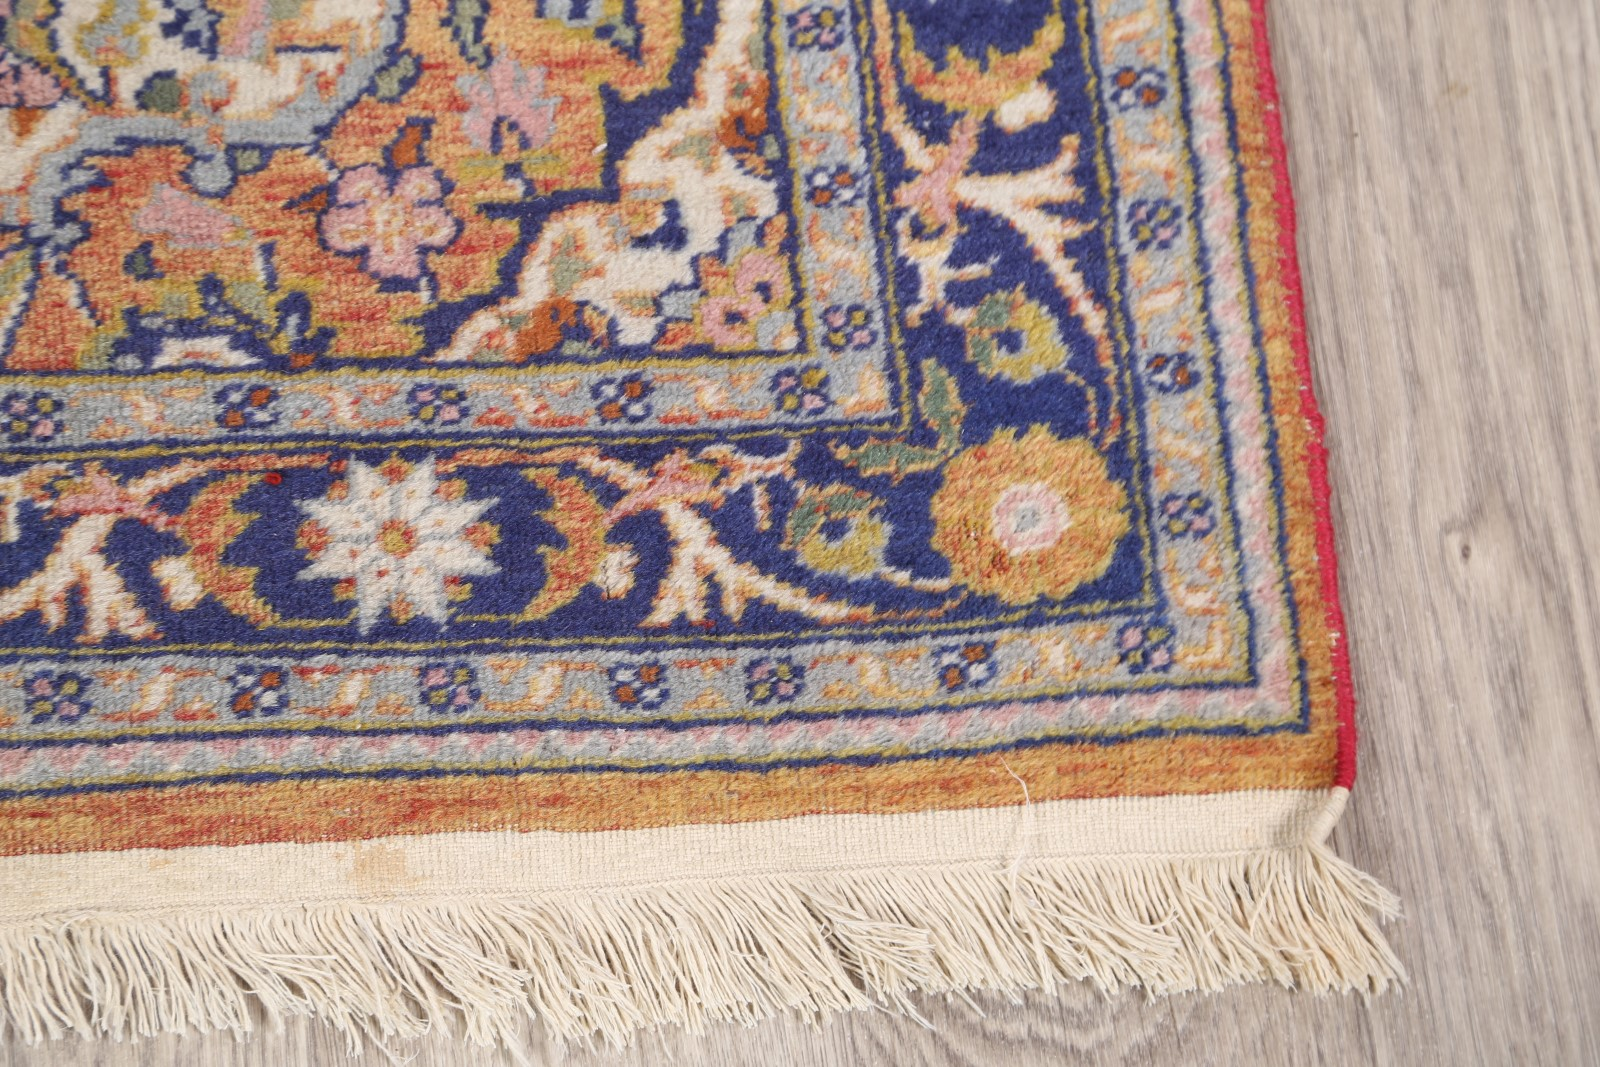 Outstanding Decorative Floral 3x4 Wool Tabriz Persian